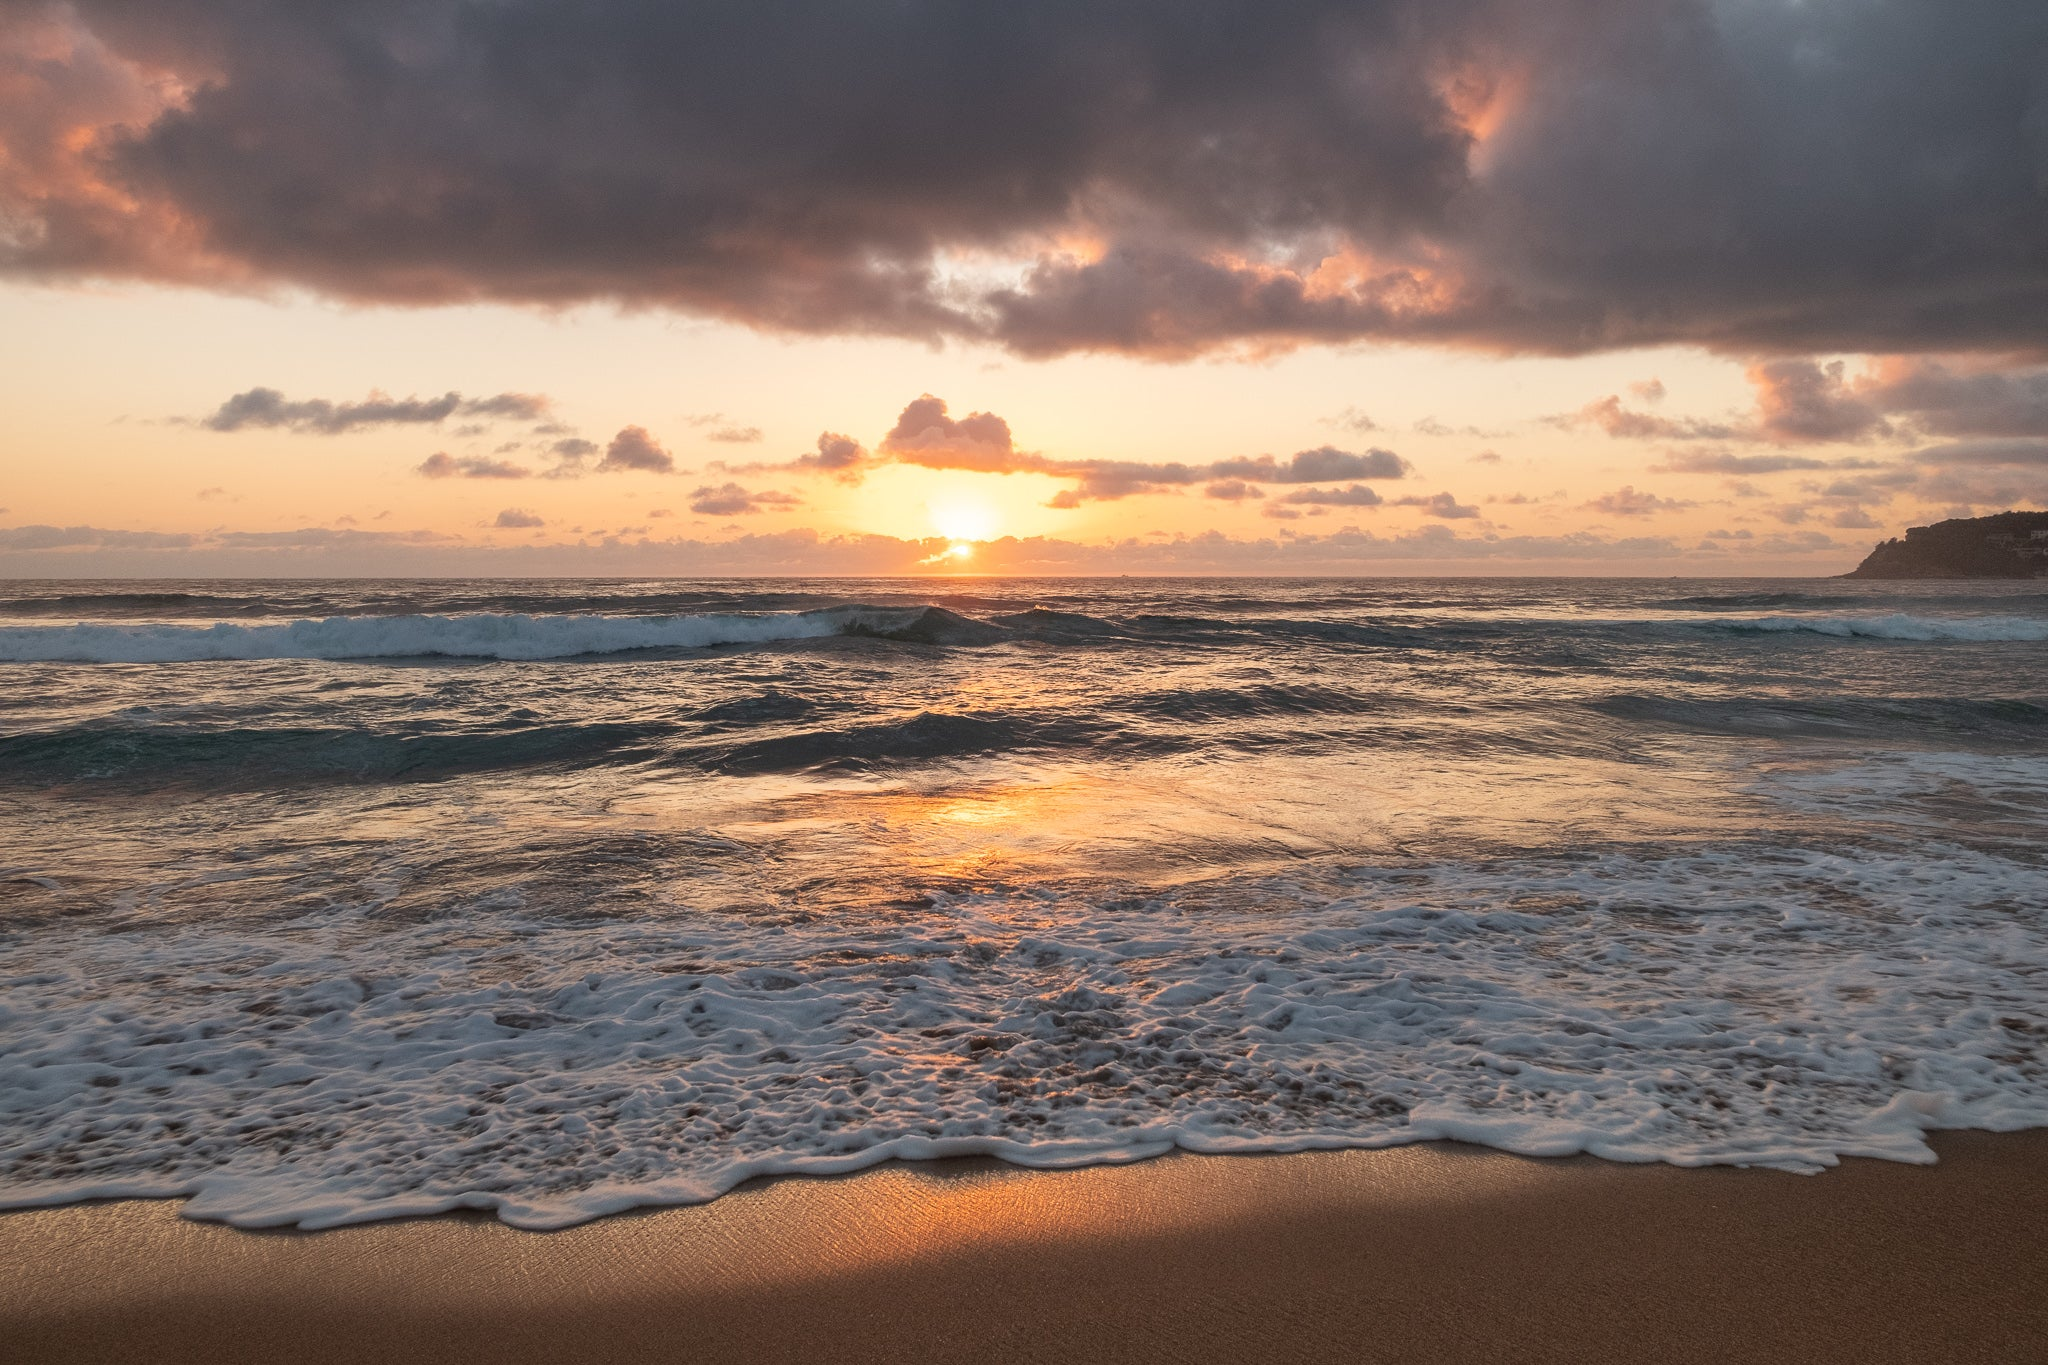 Sunrise photo from 23rd October 2019 at Manly Beach, Sydney